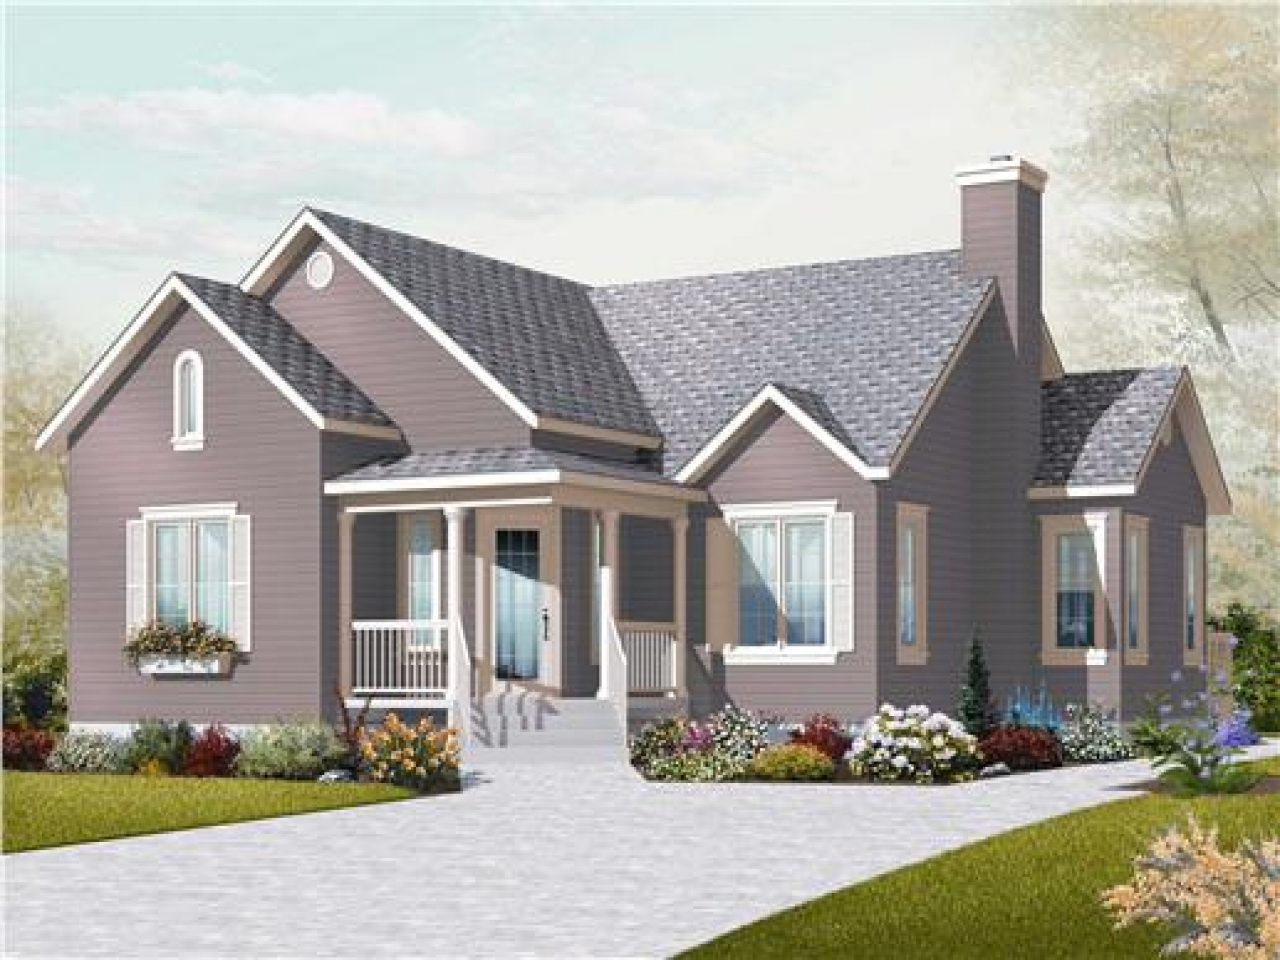 Small two bedroom house plans small country house plans for Small country home plans